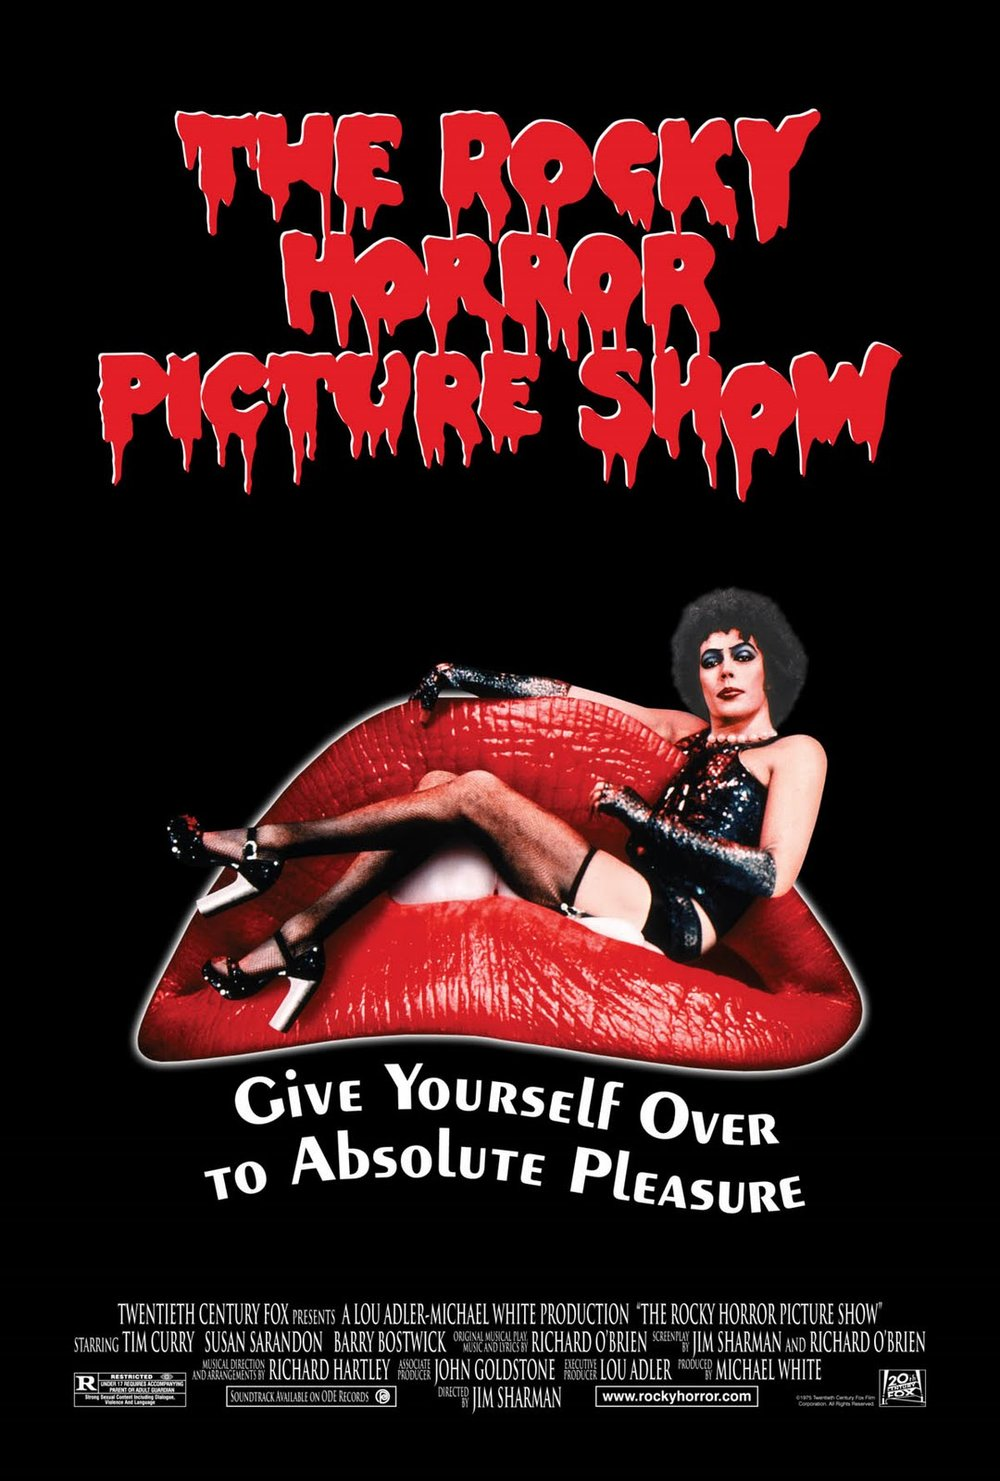 The_rocky_horror_picture_show_poster-2.jpg